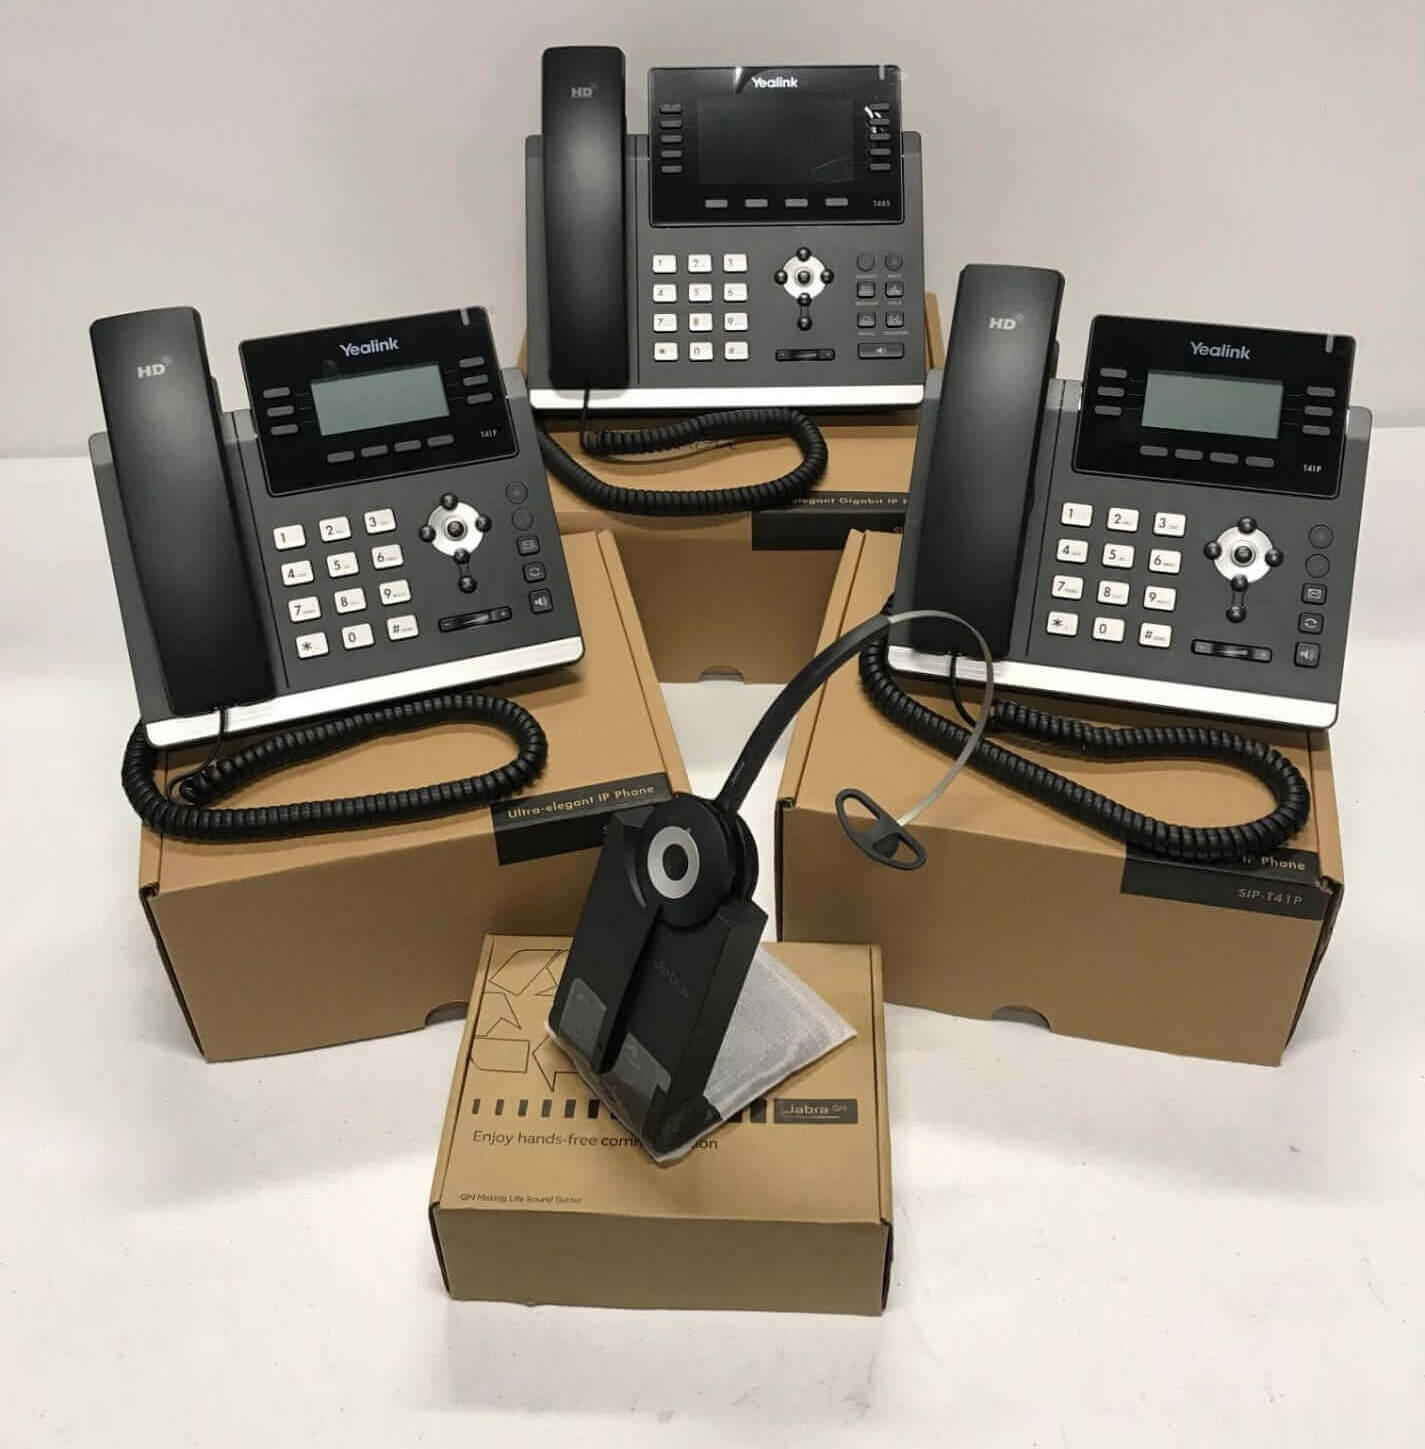 Cloud Hosted Phone System with phones and cordless headset